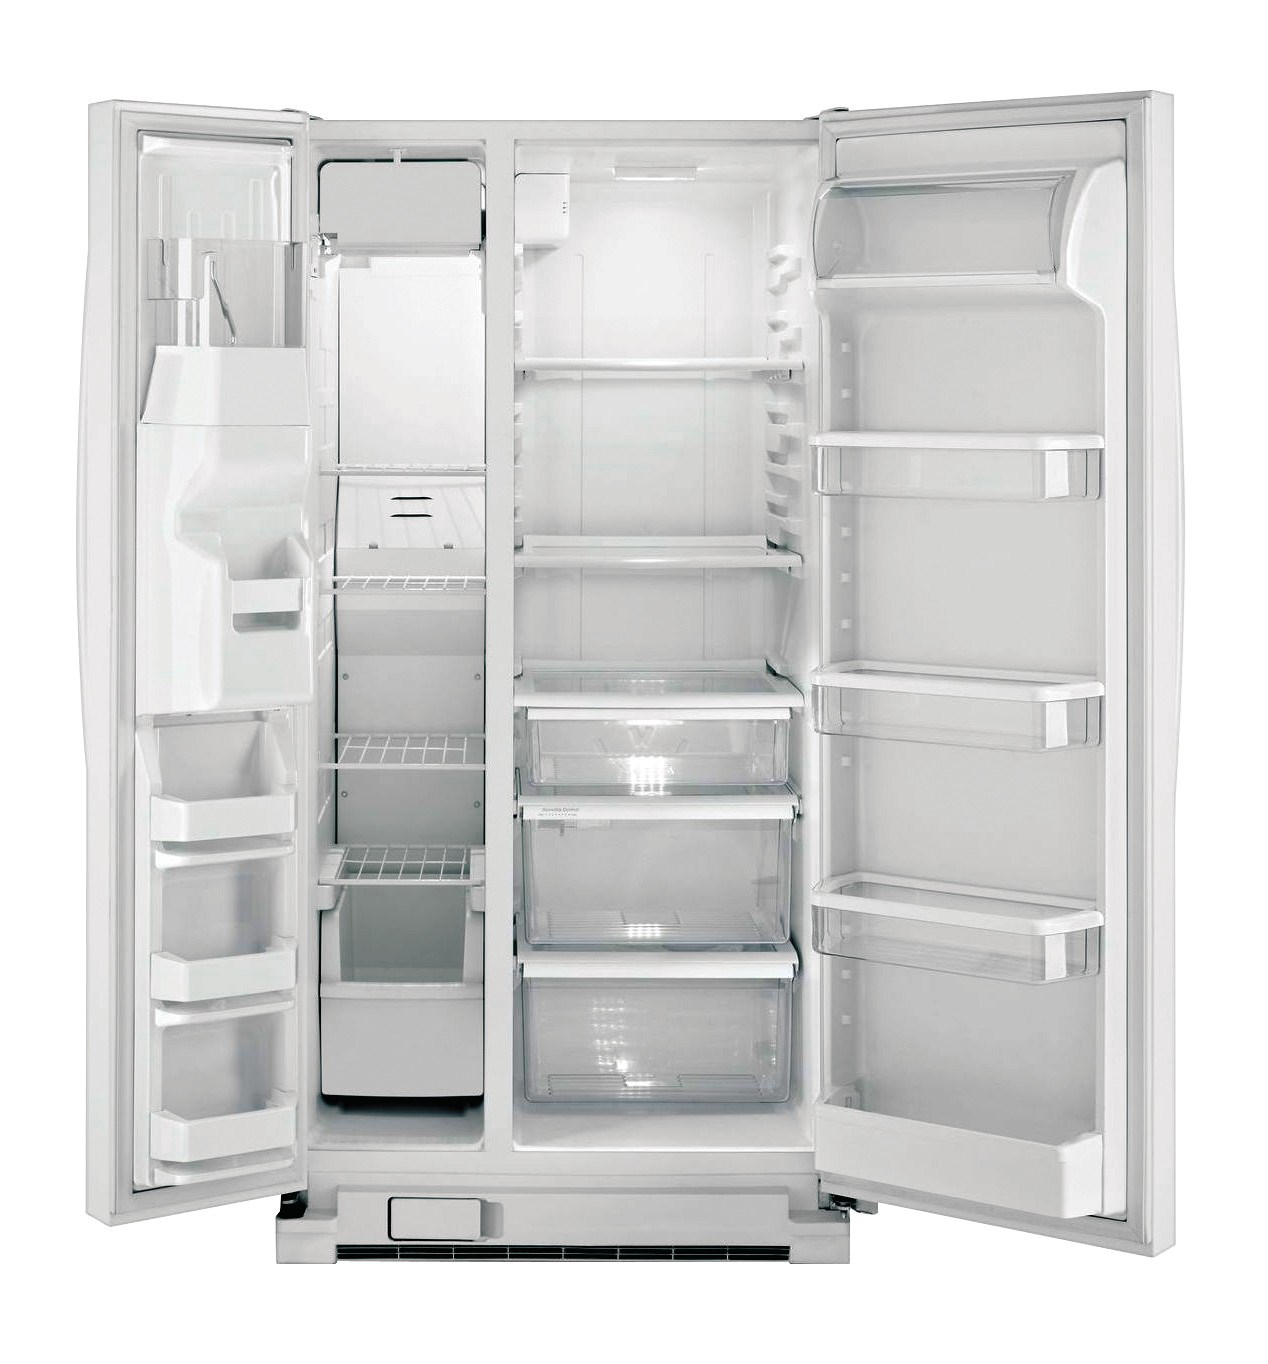 whirlpool side by side refrigerator white. whirlpool® 22 cu. ft. side-by-side refrigerator, white whirlpool side by refrigerator